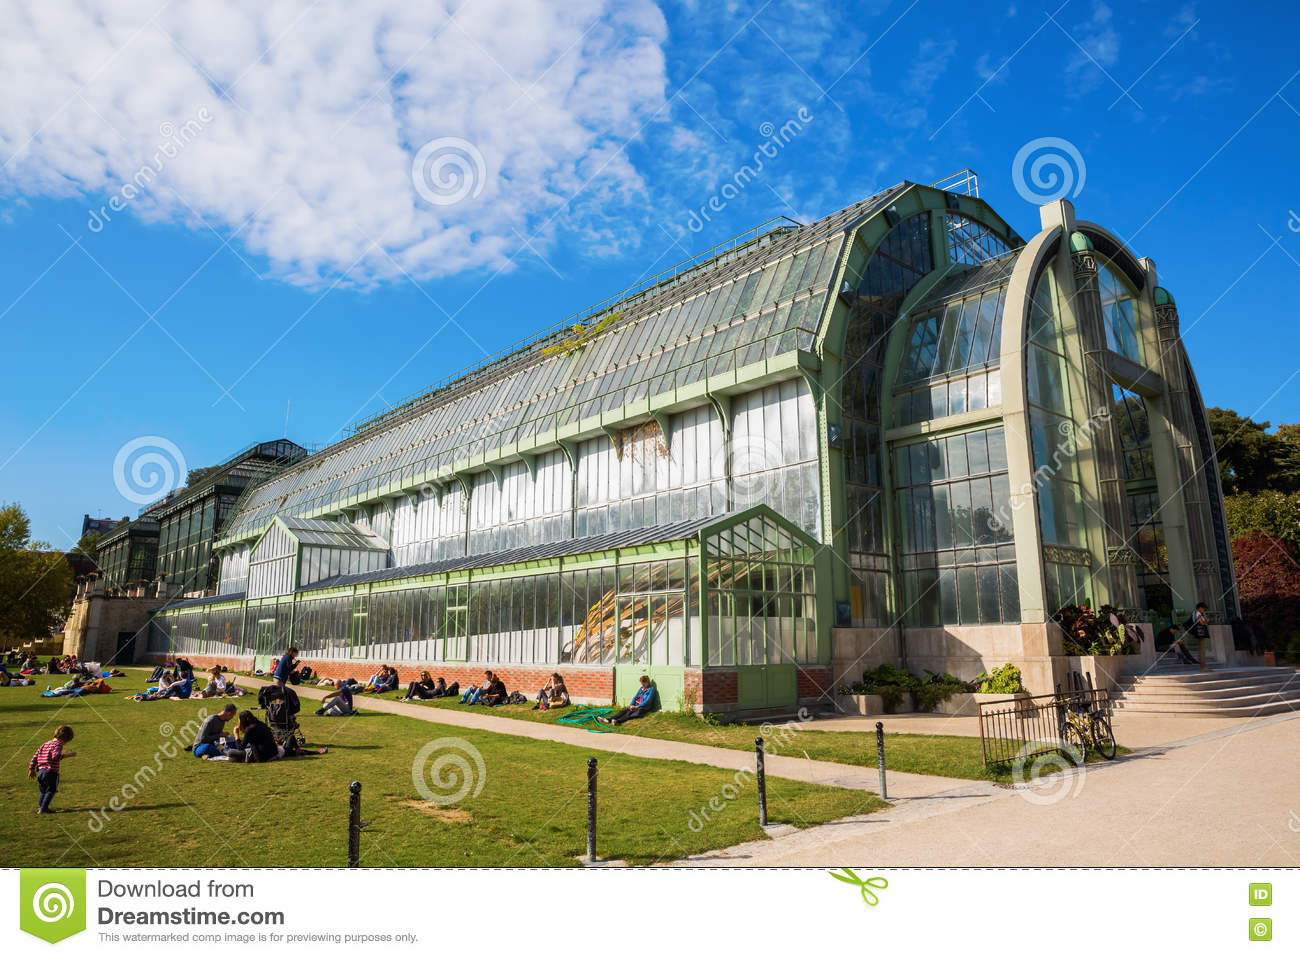 Greenhouse in the jardin des plantes in paris editorial - Esplanade jardin des plantes paris ...